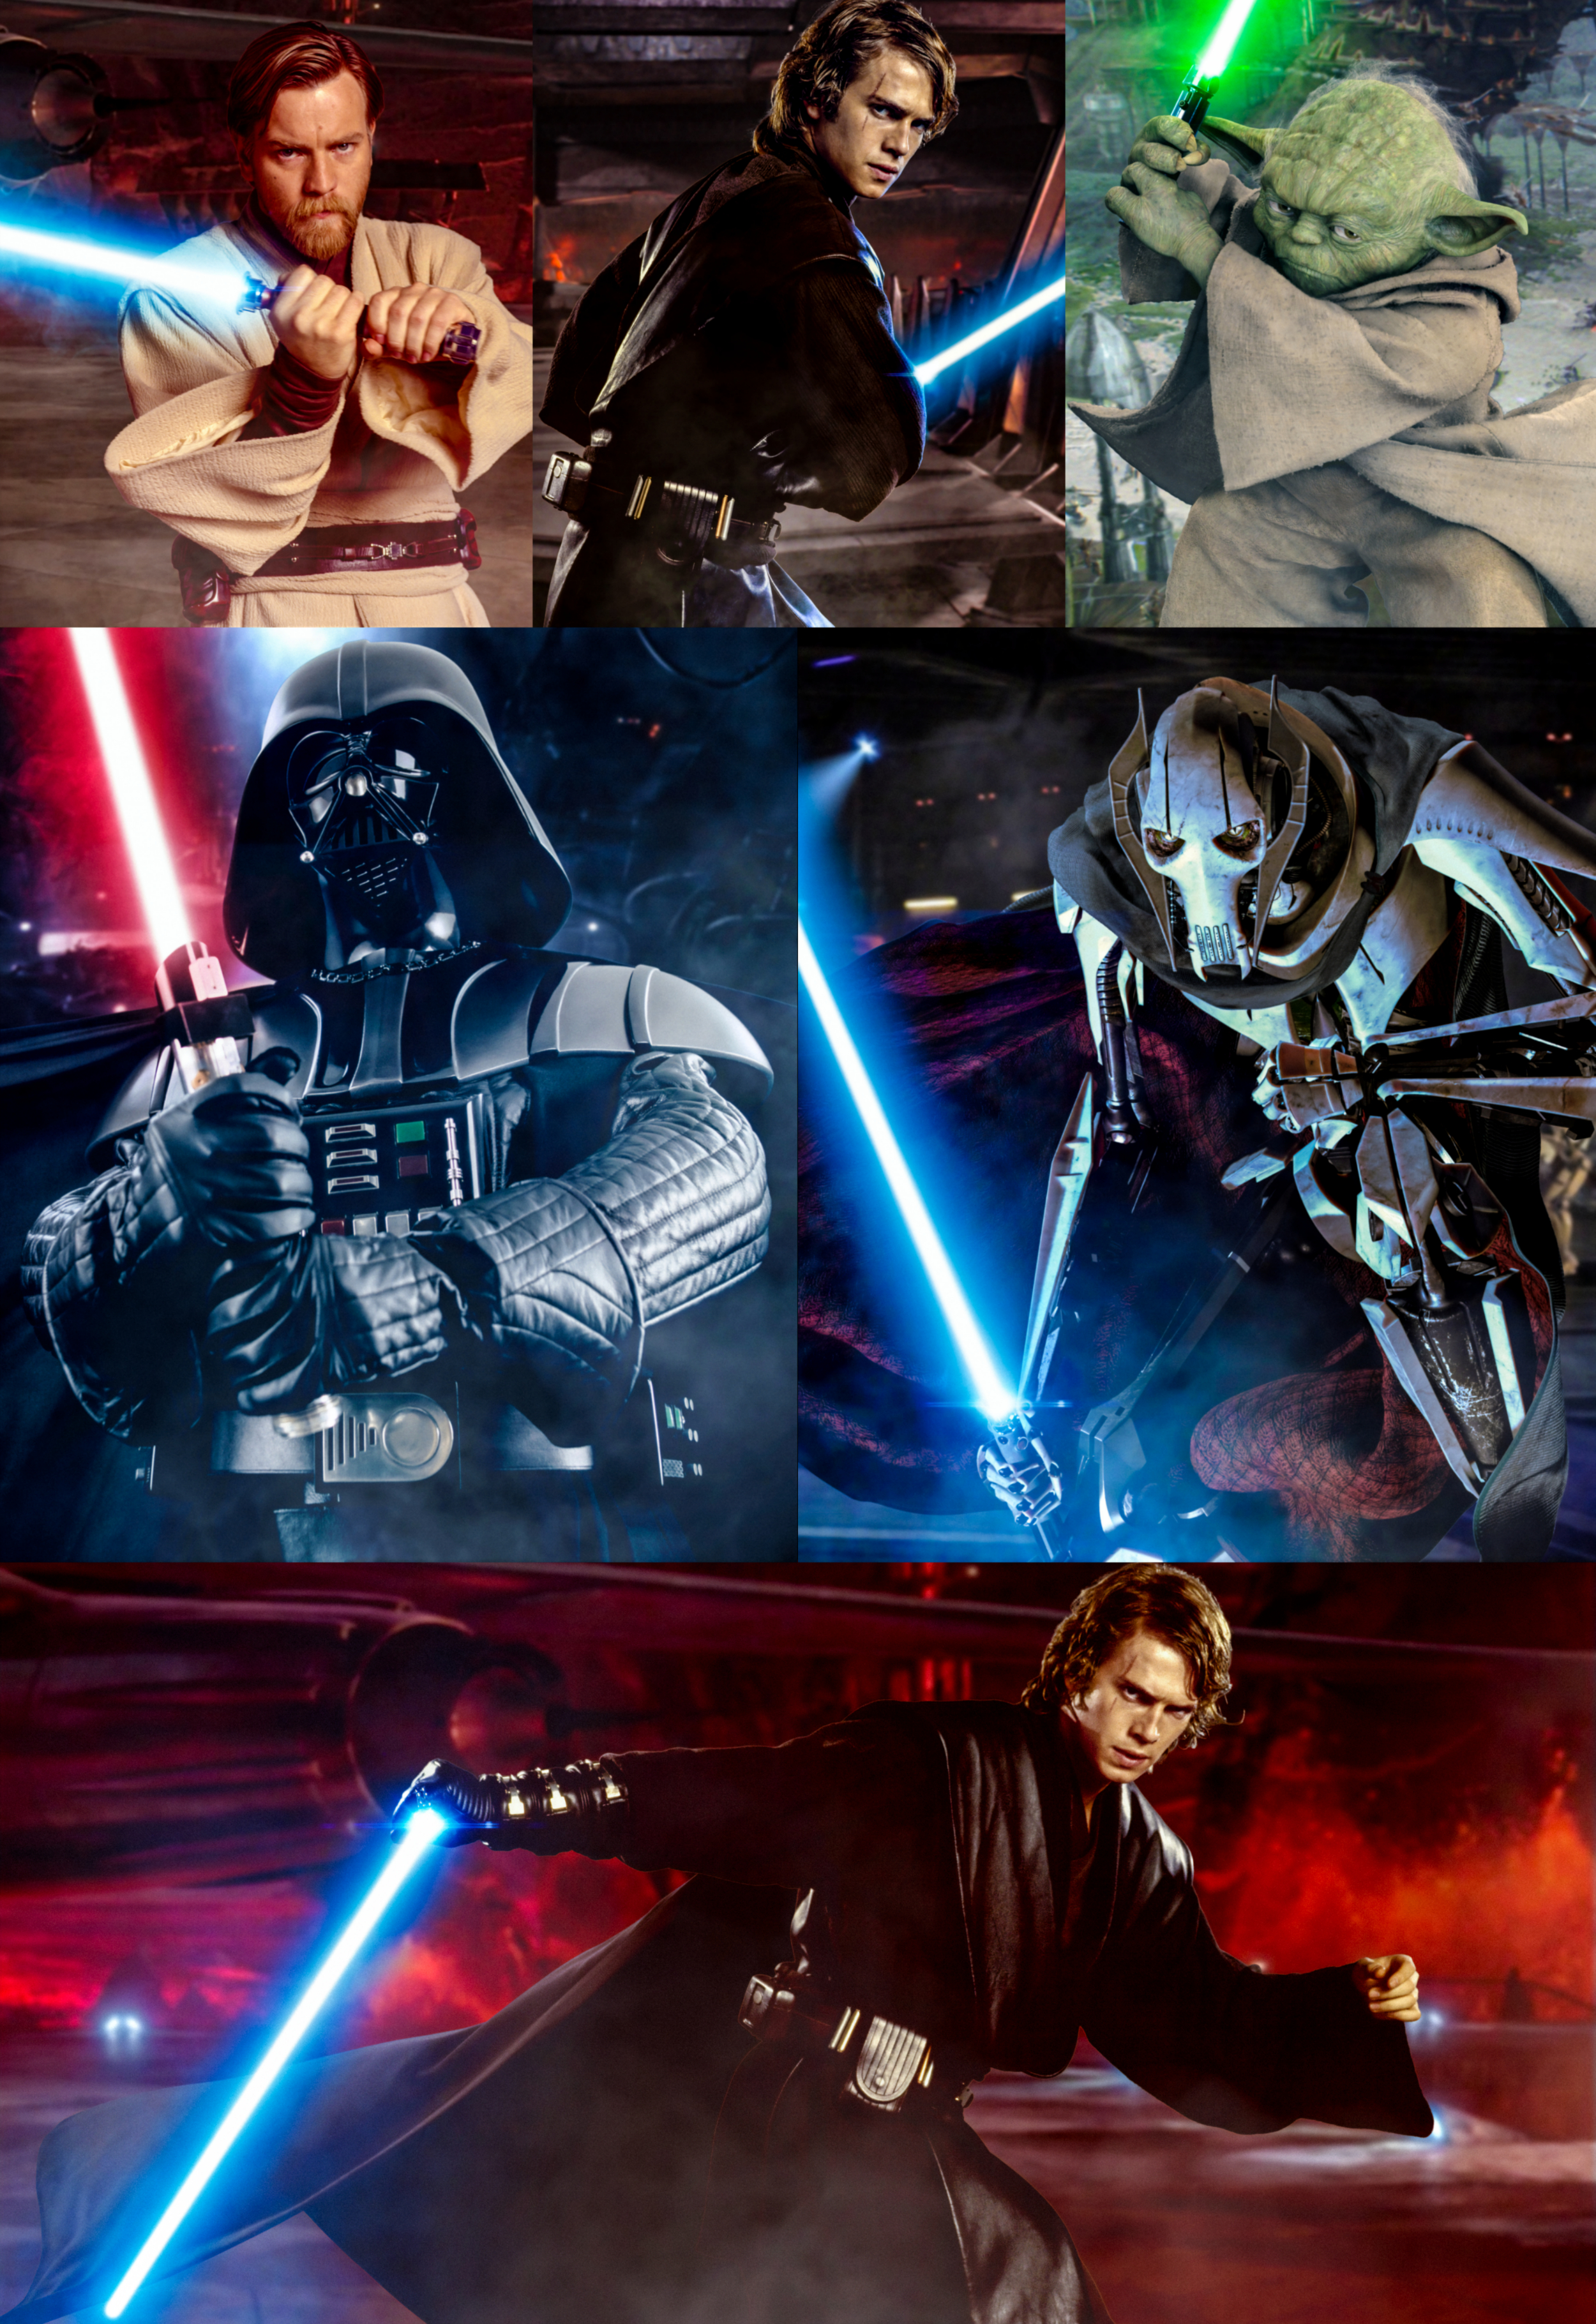 Star Wars Revenge Of The Sith Fanmade Posters By Harleyquinn645 On Deviantart